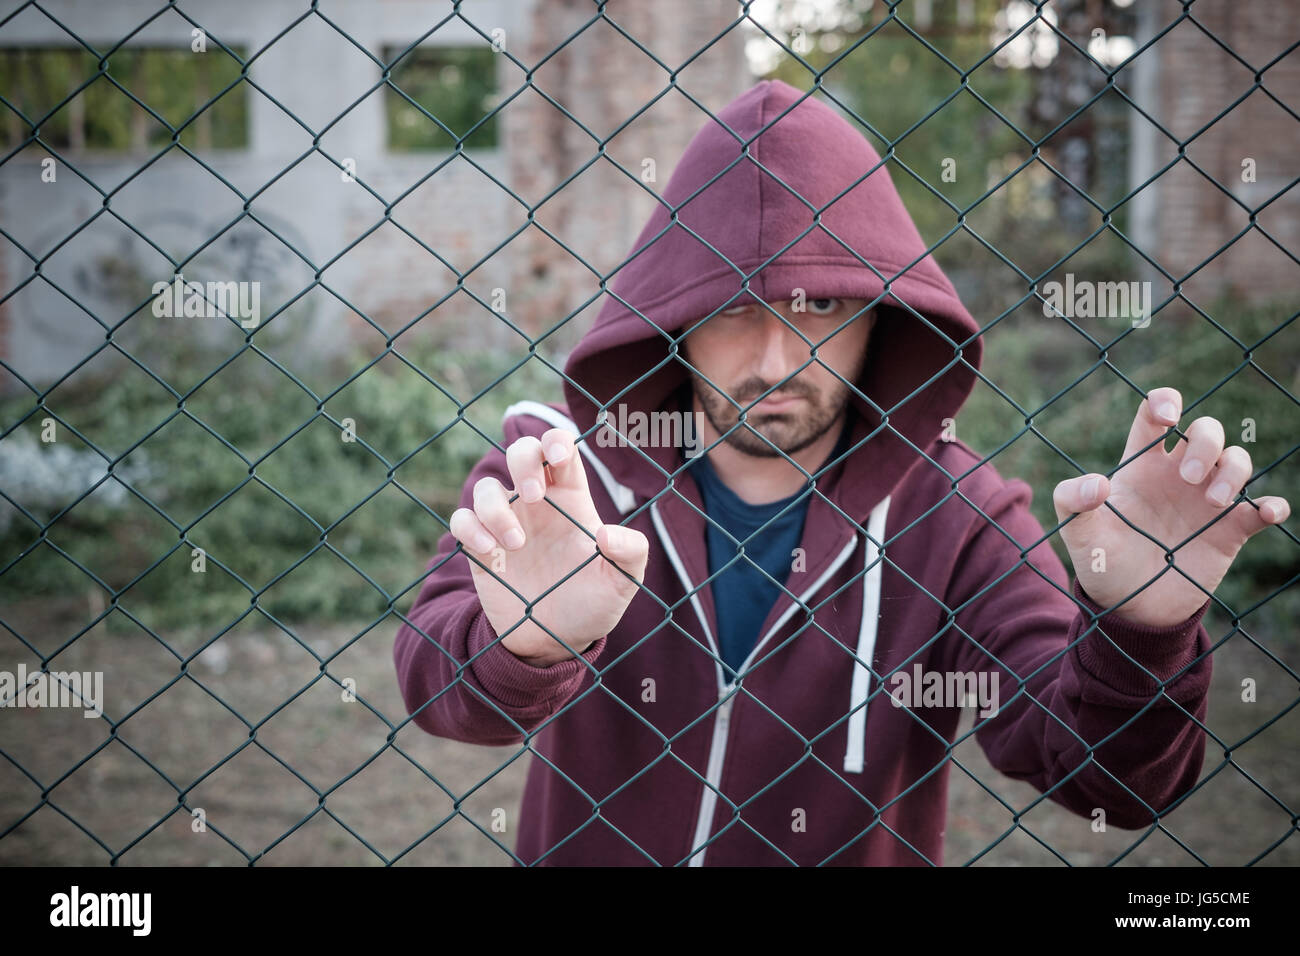 Sad and troubled boy against metal fence - Stock Image